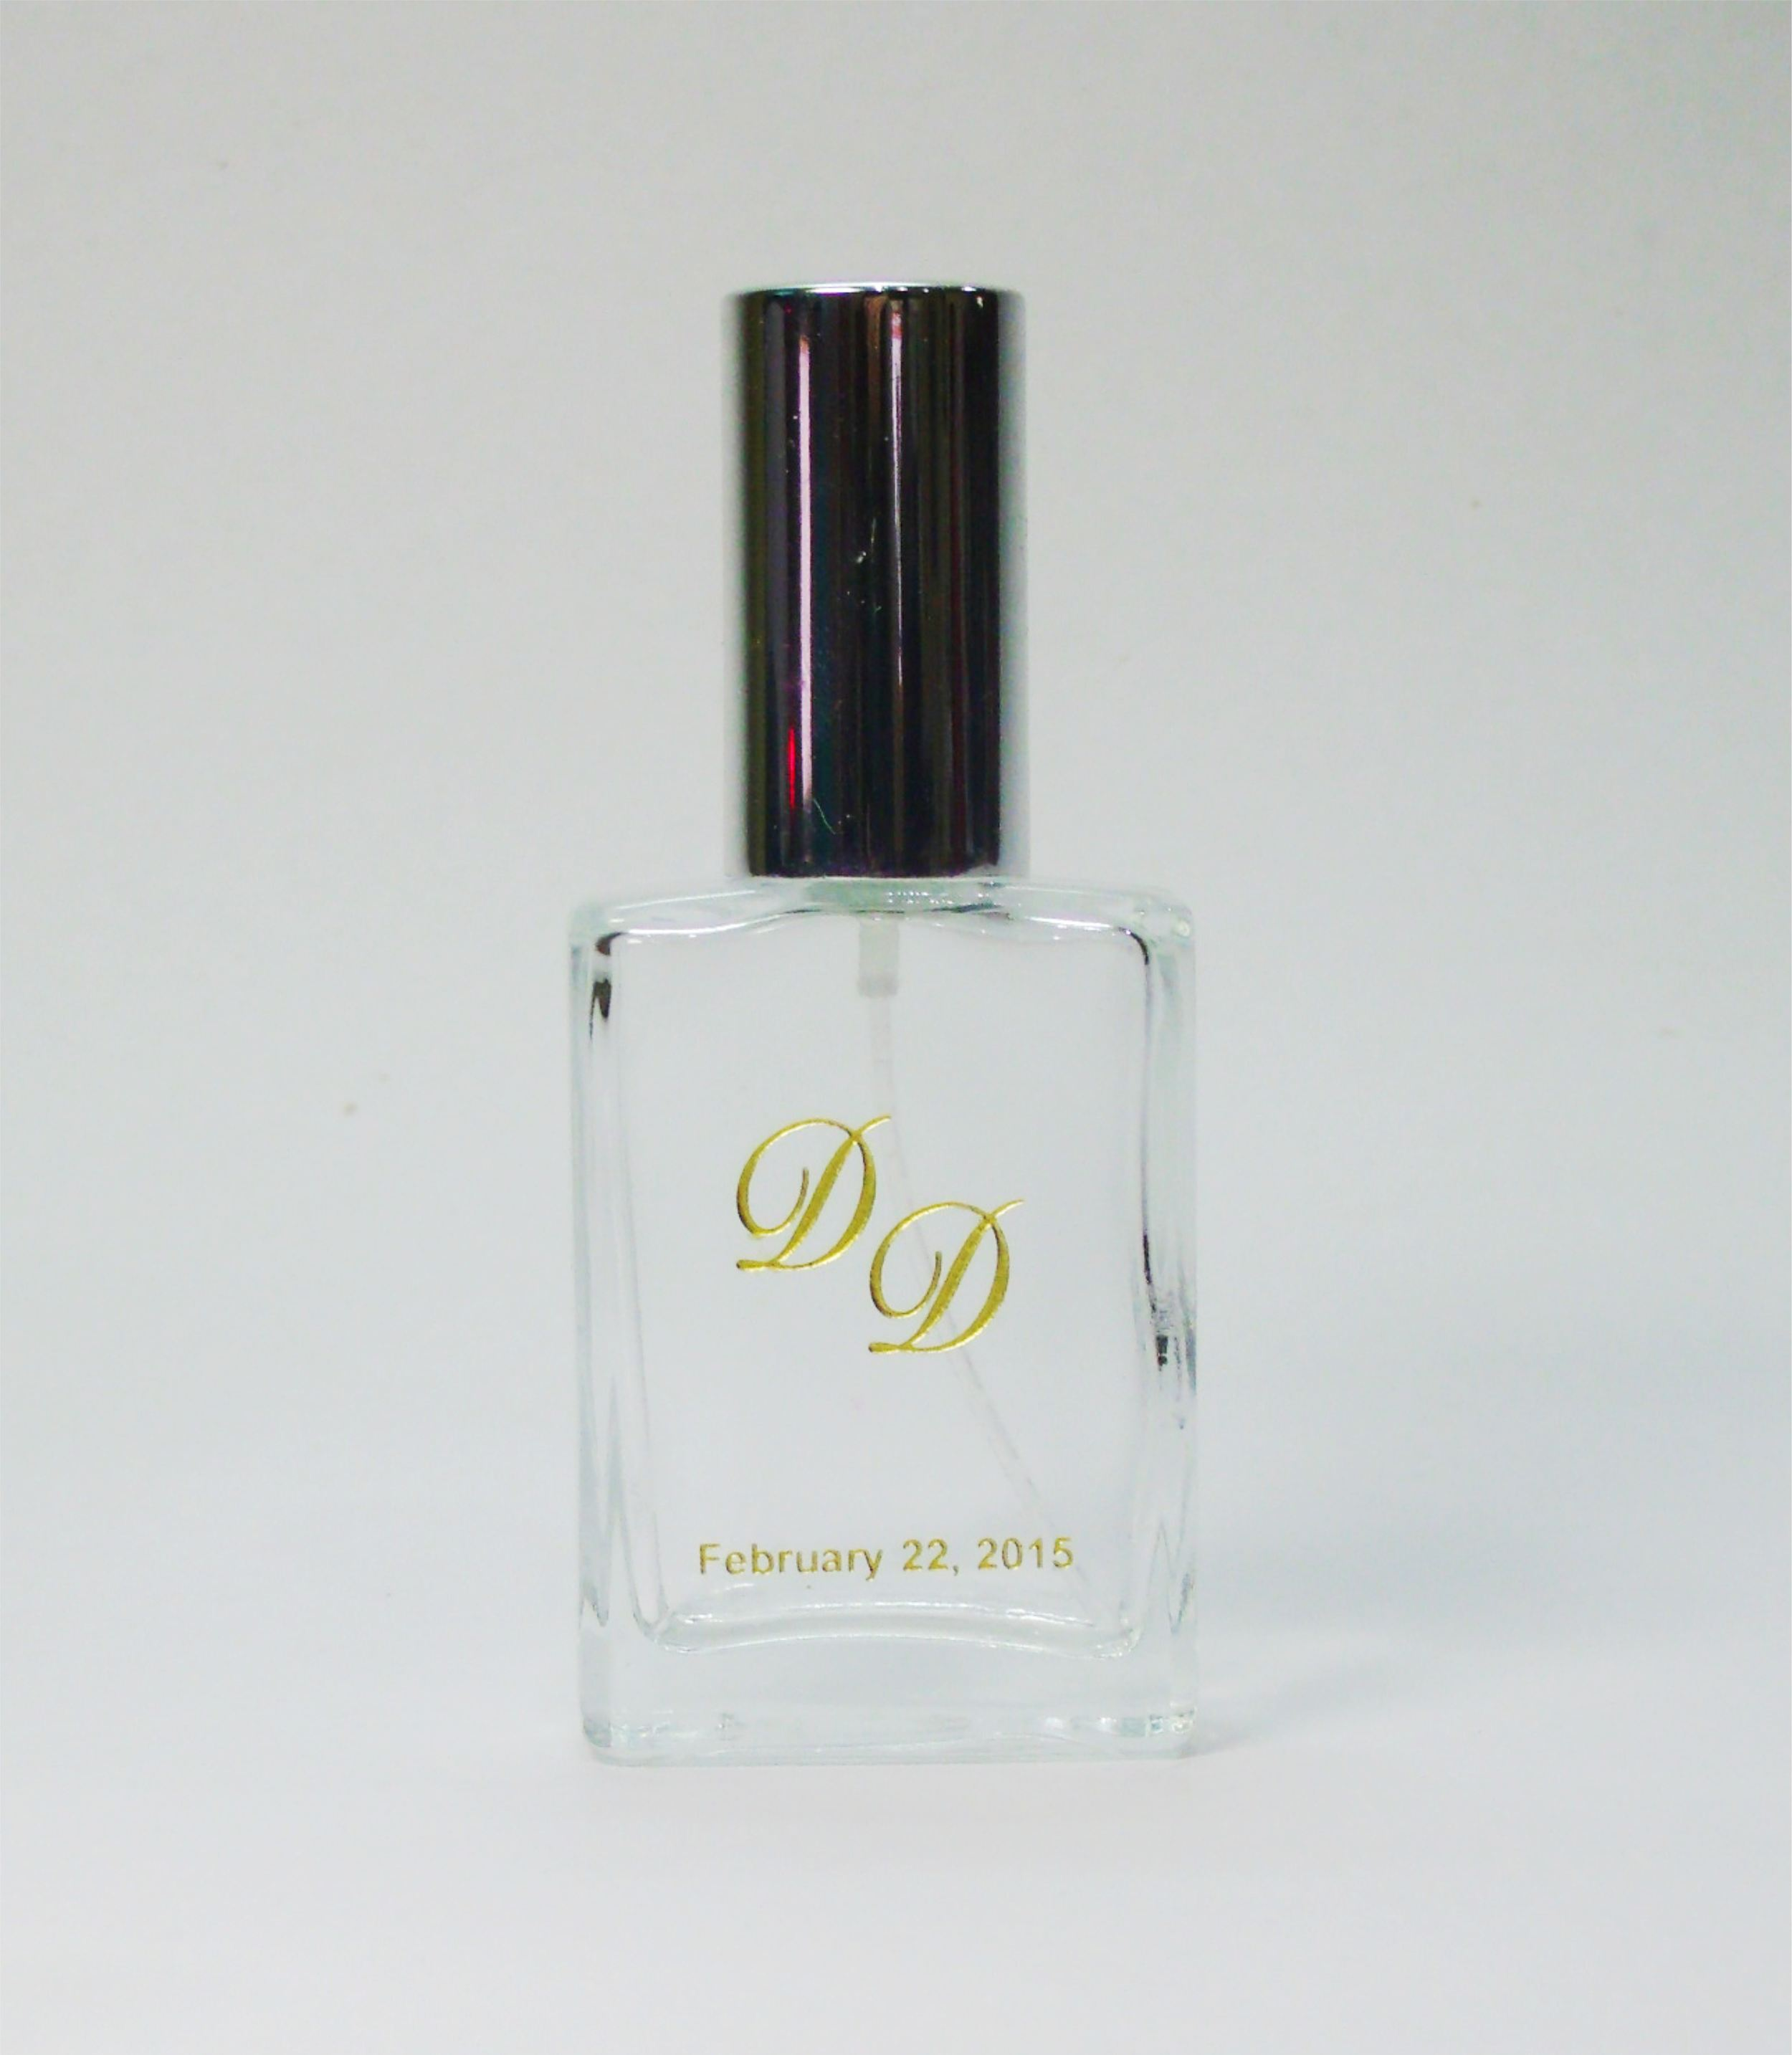 Personalized Etched Perfume Bottle